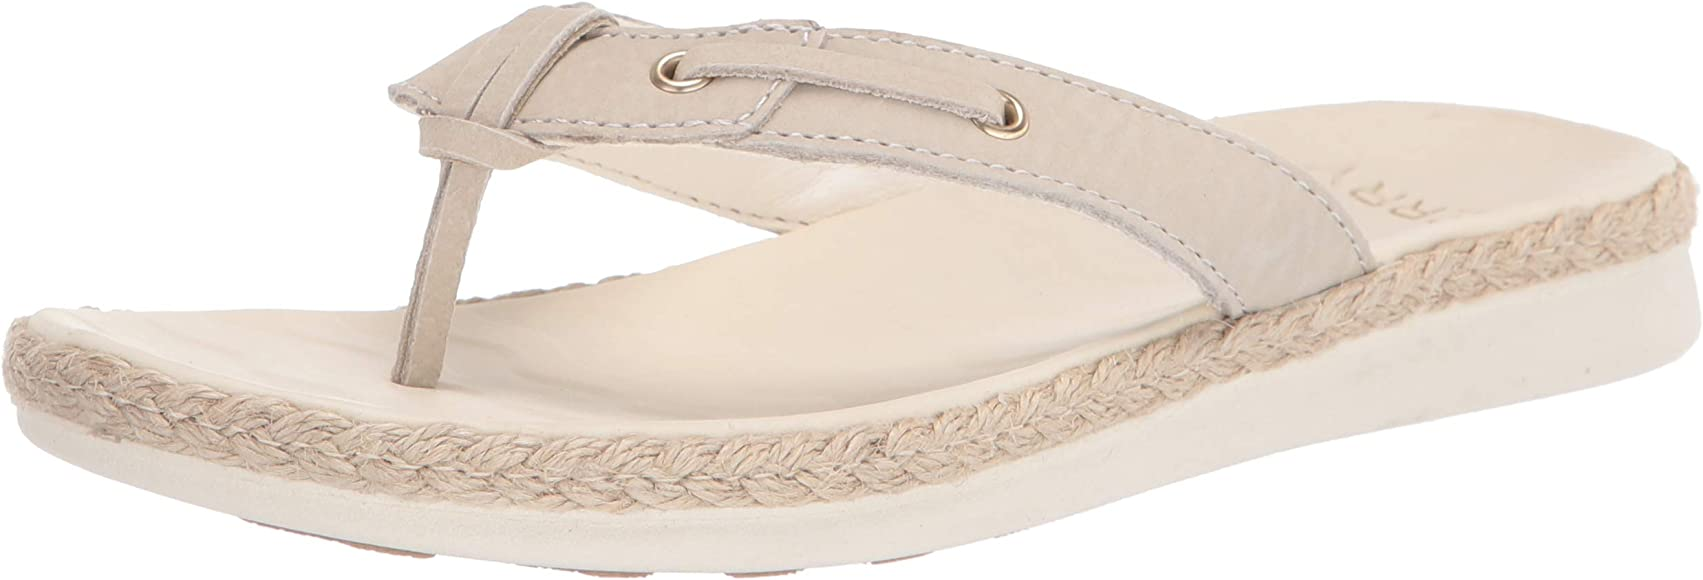 Sperry Women's Adriatic Thong Skip Lace